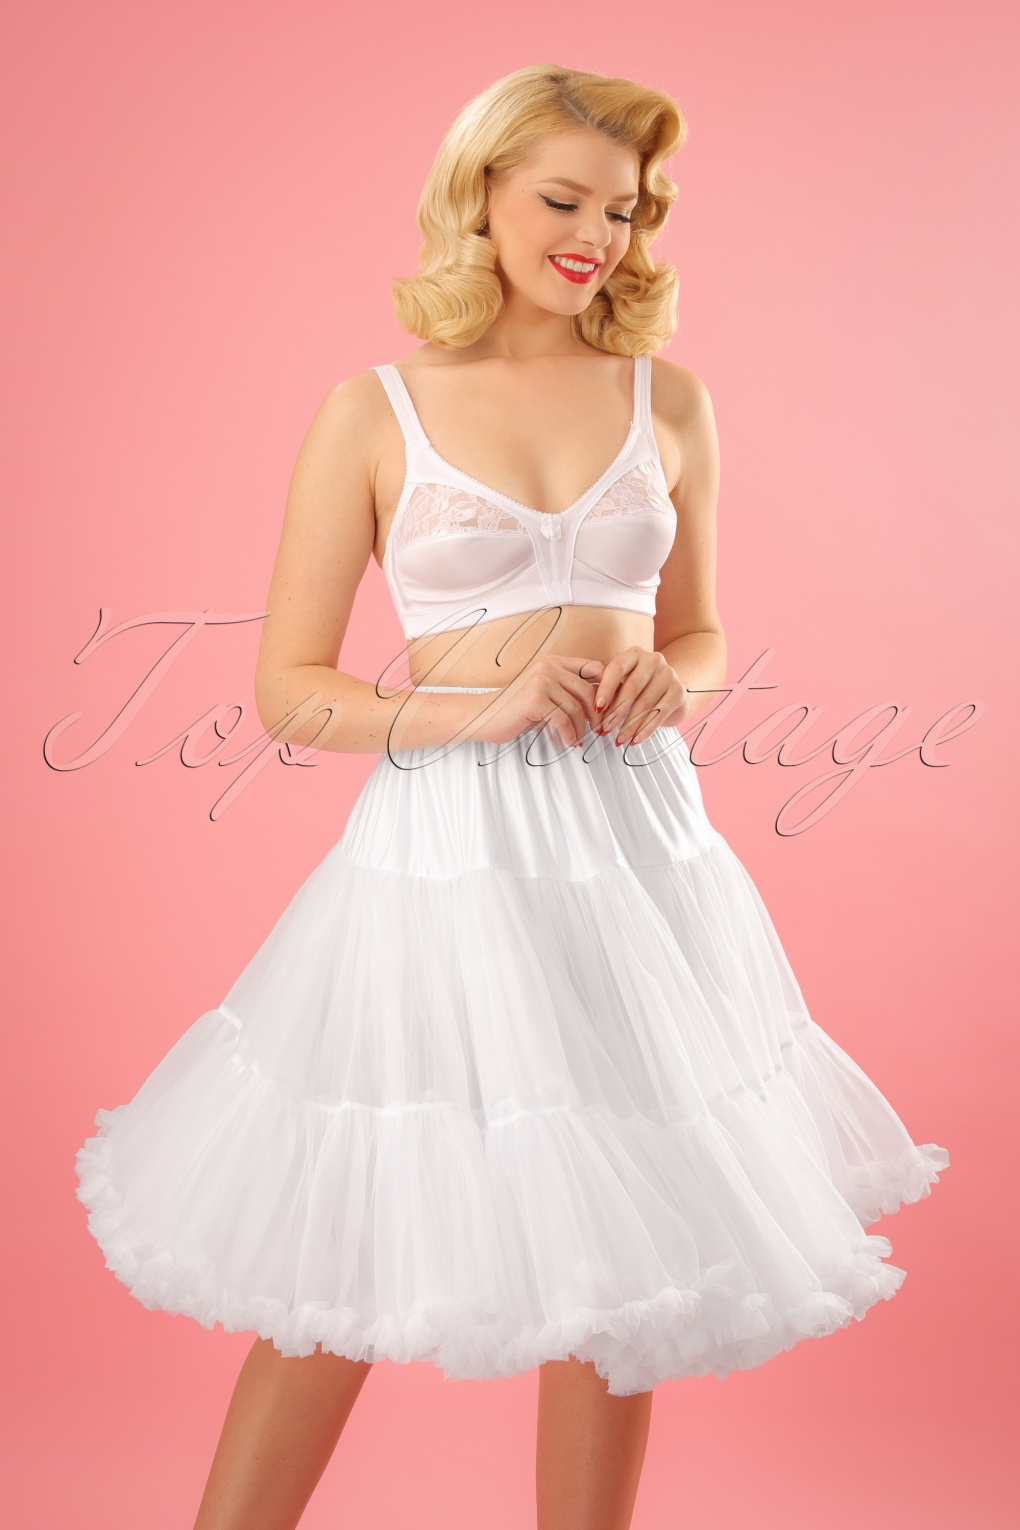 1950s Crinoline Skirt | Crinoline Slips | Crinoline Petticoat 50s Lola Lifeforms Petticoat in White £45.17 AT vintagedancer.com